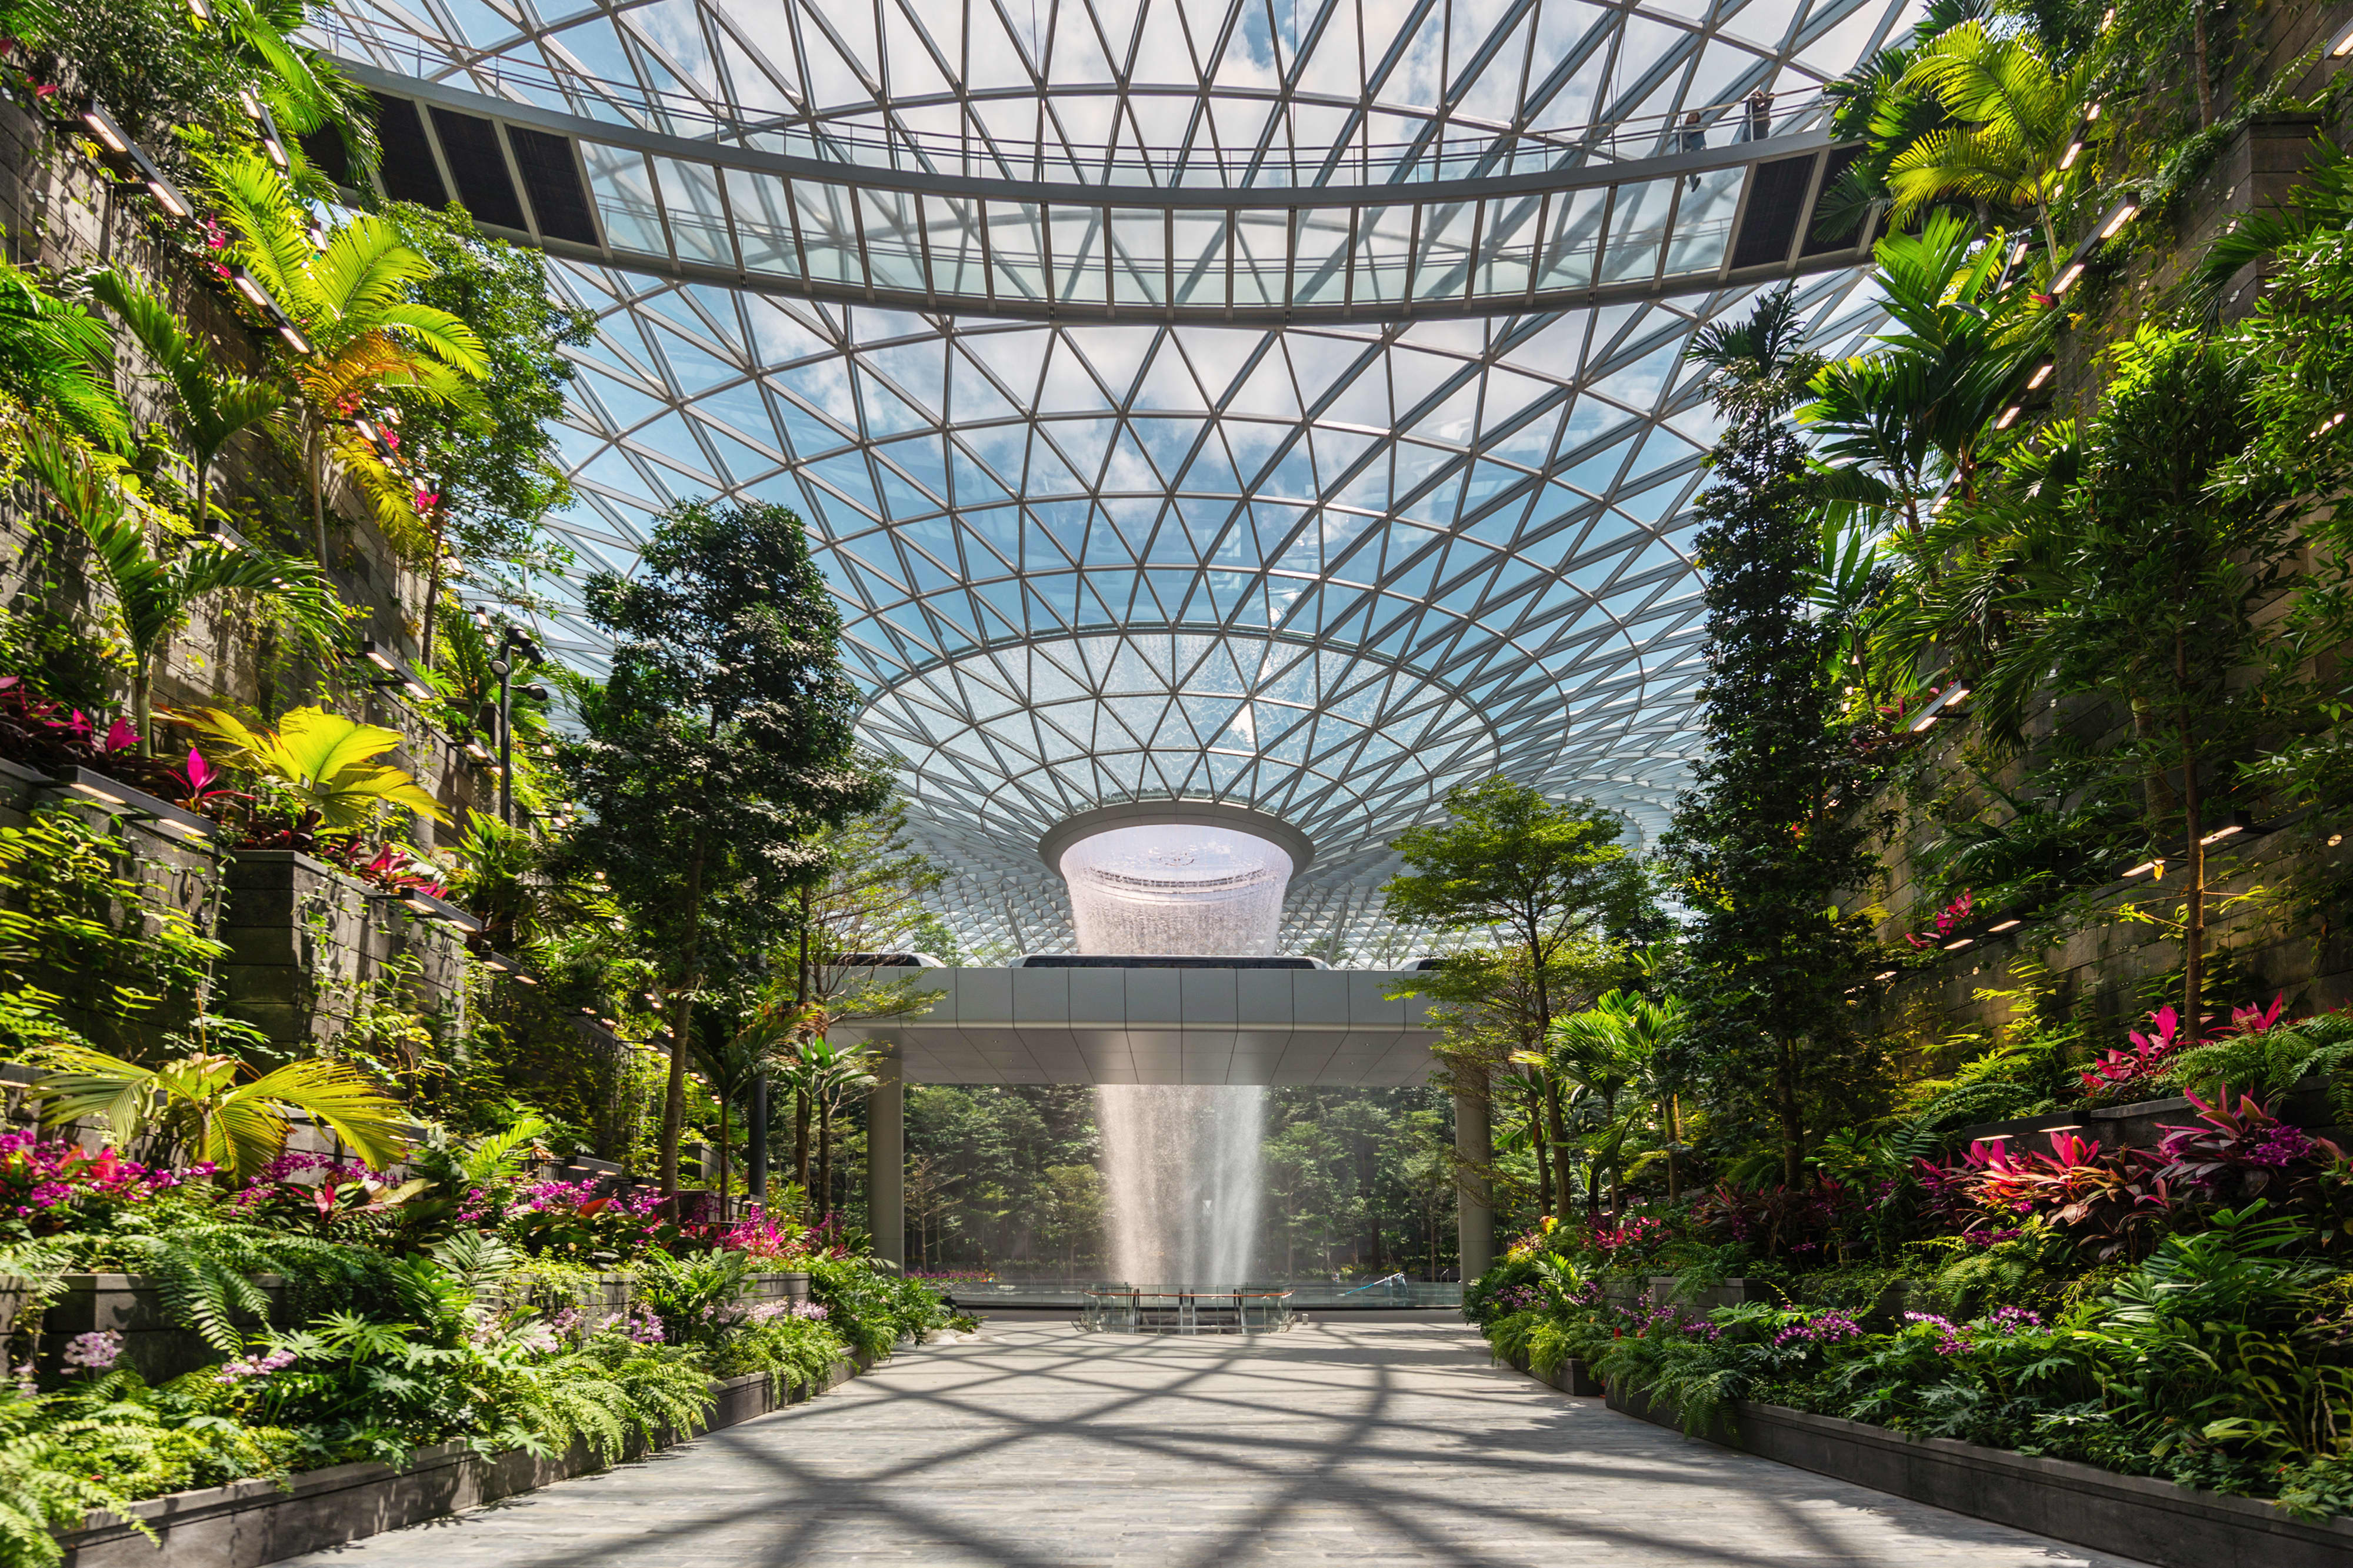 Singapore's Changi Airport touts the world's tallest indoor waterfall